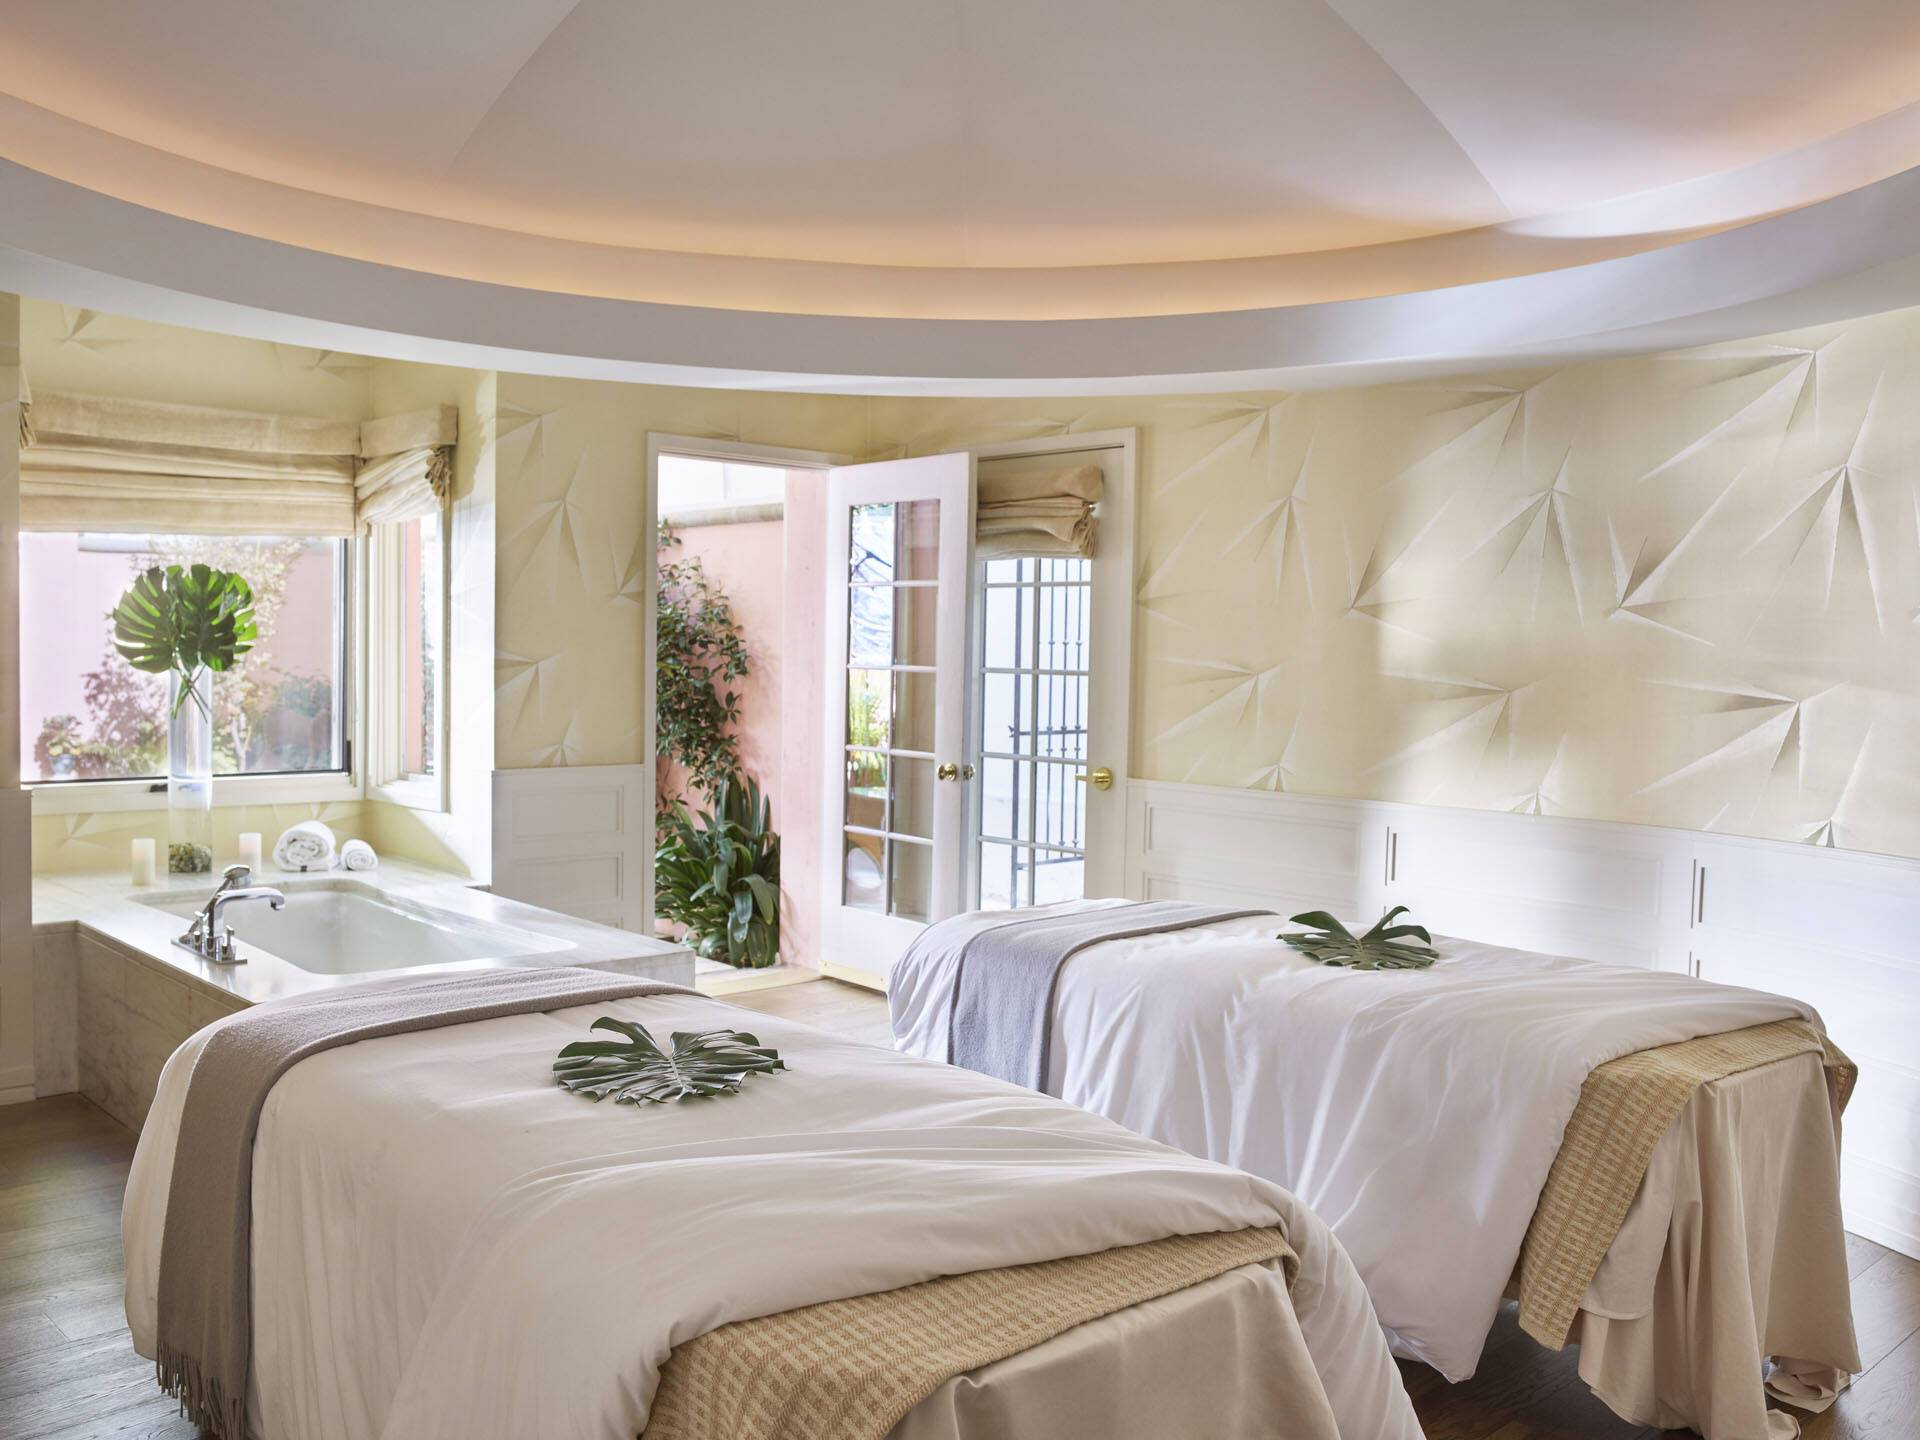 Bel Air Los Angeles Spa